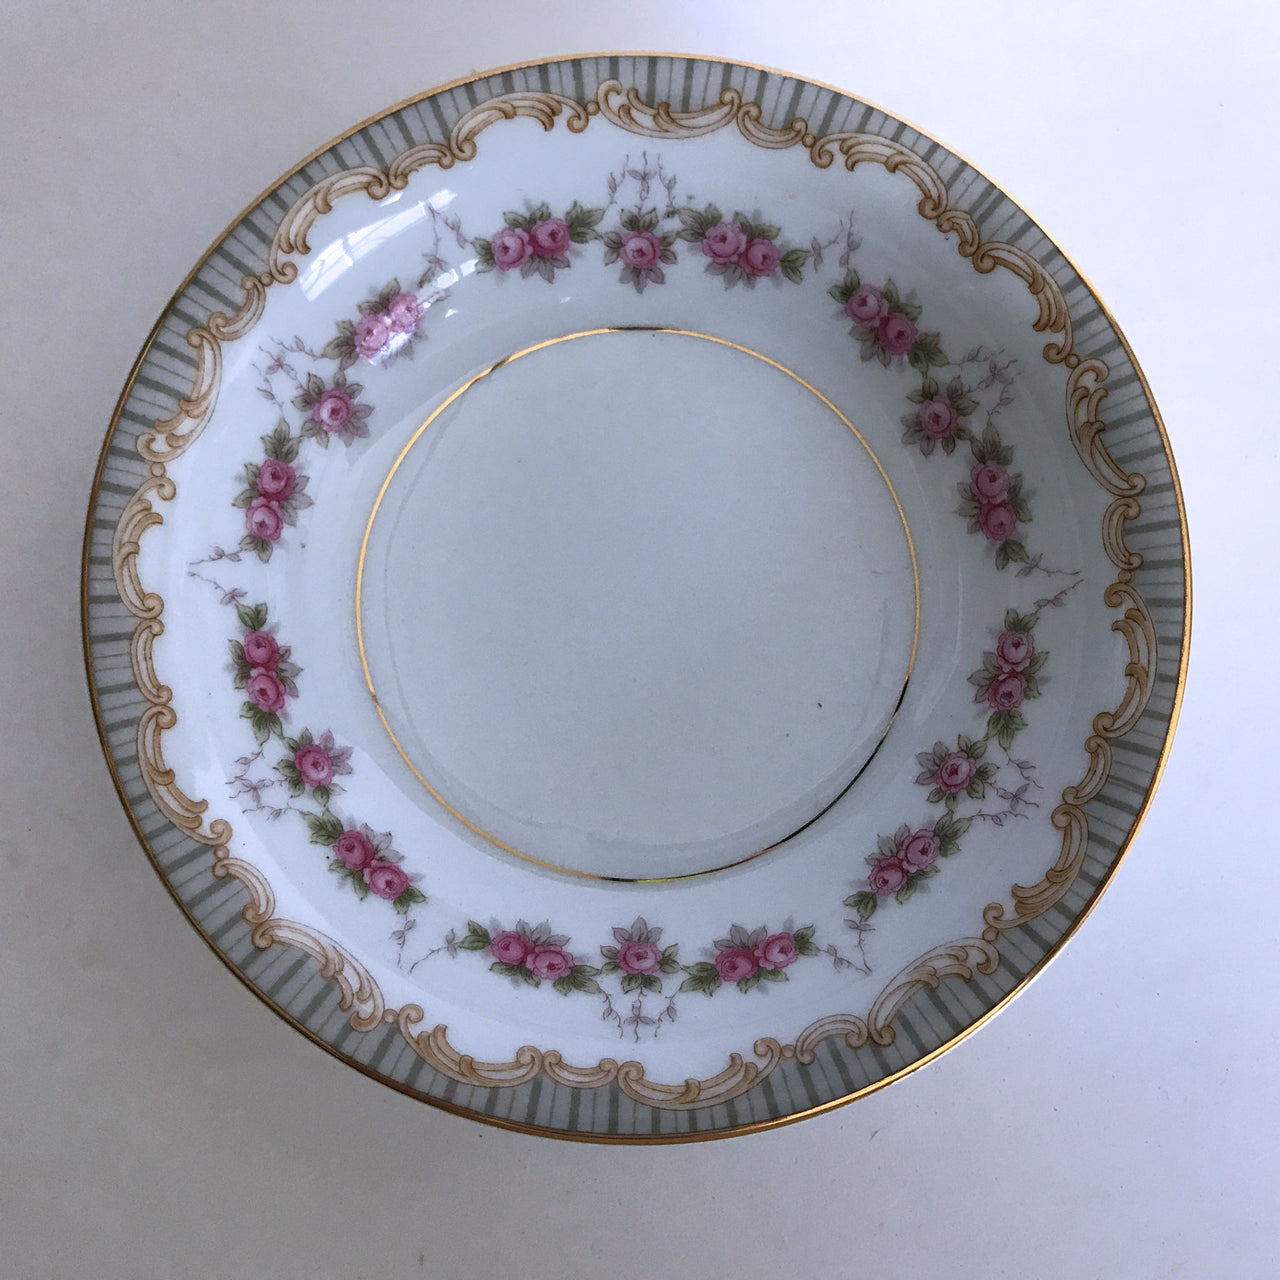 Vintage Noritake Ridgewood 5201 Berry Sauce Bowl Pink Flower Tan Gray Gold Trim